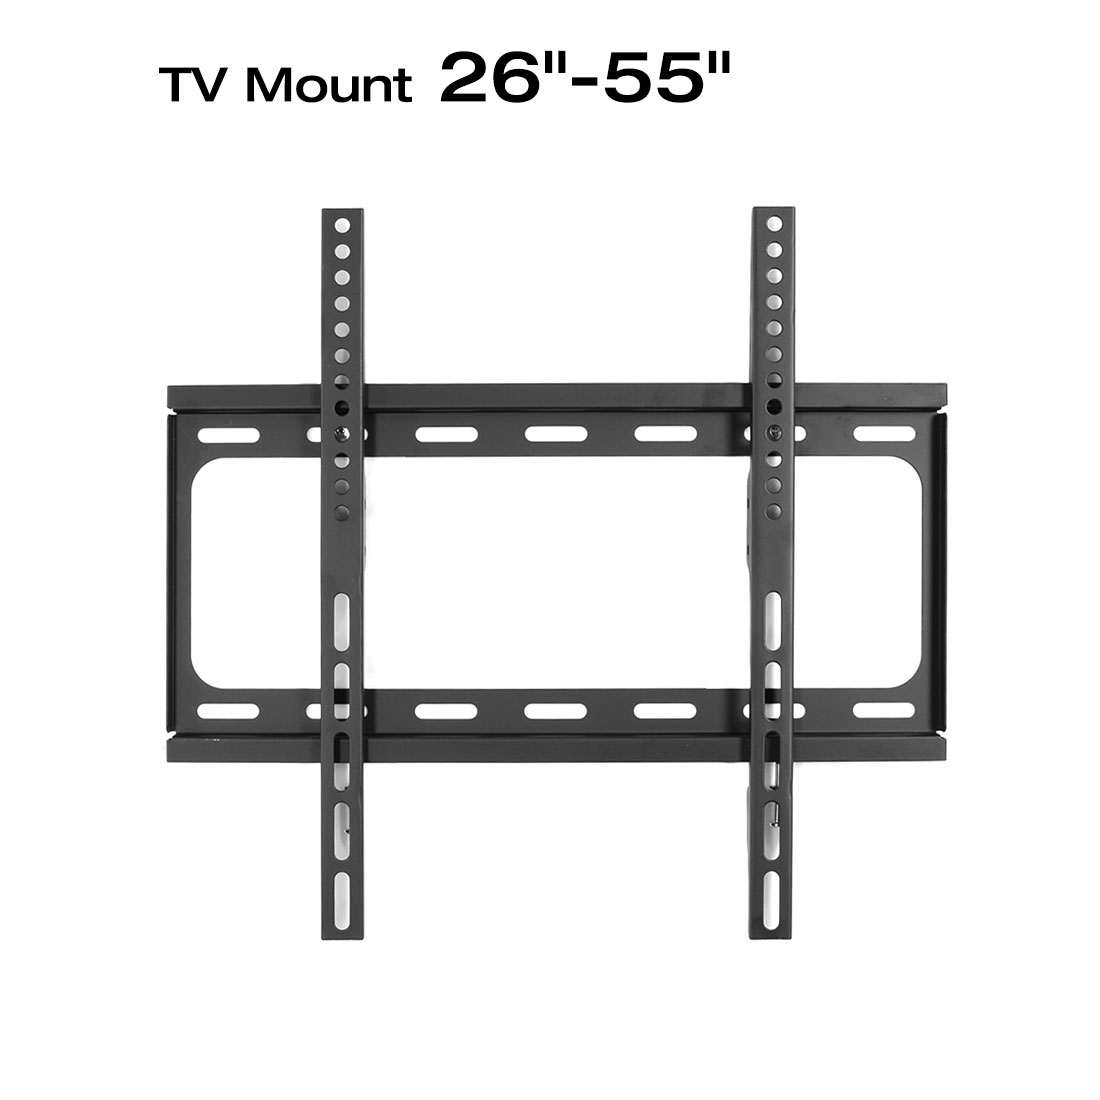 Loctek F1S LOW PROFILE FIXED LED TV BRACKET 26″ – 55″. It fits for Samsung LG VIZIO Seiki Sony Toshiba Sharp Panasonic TCL TV etc.